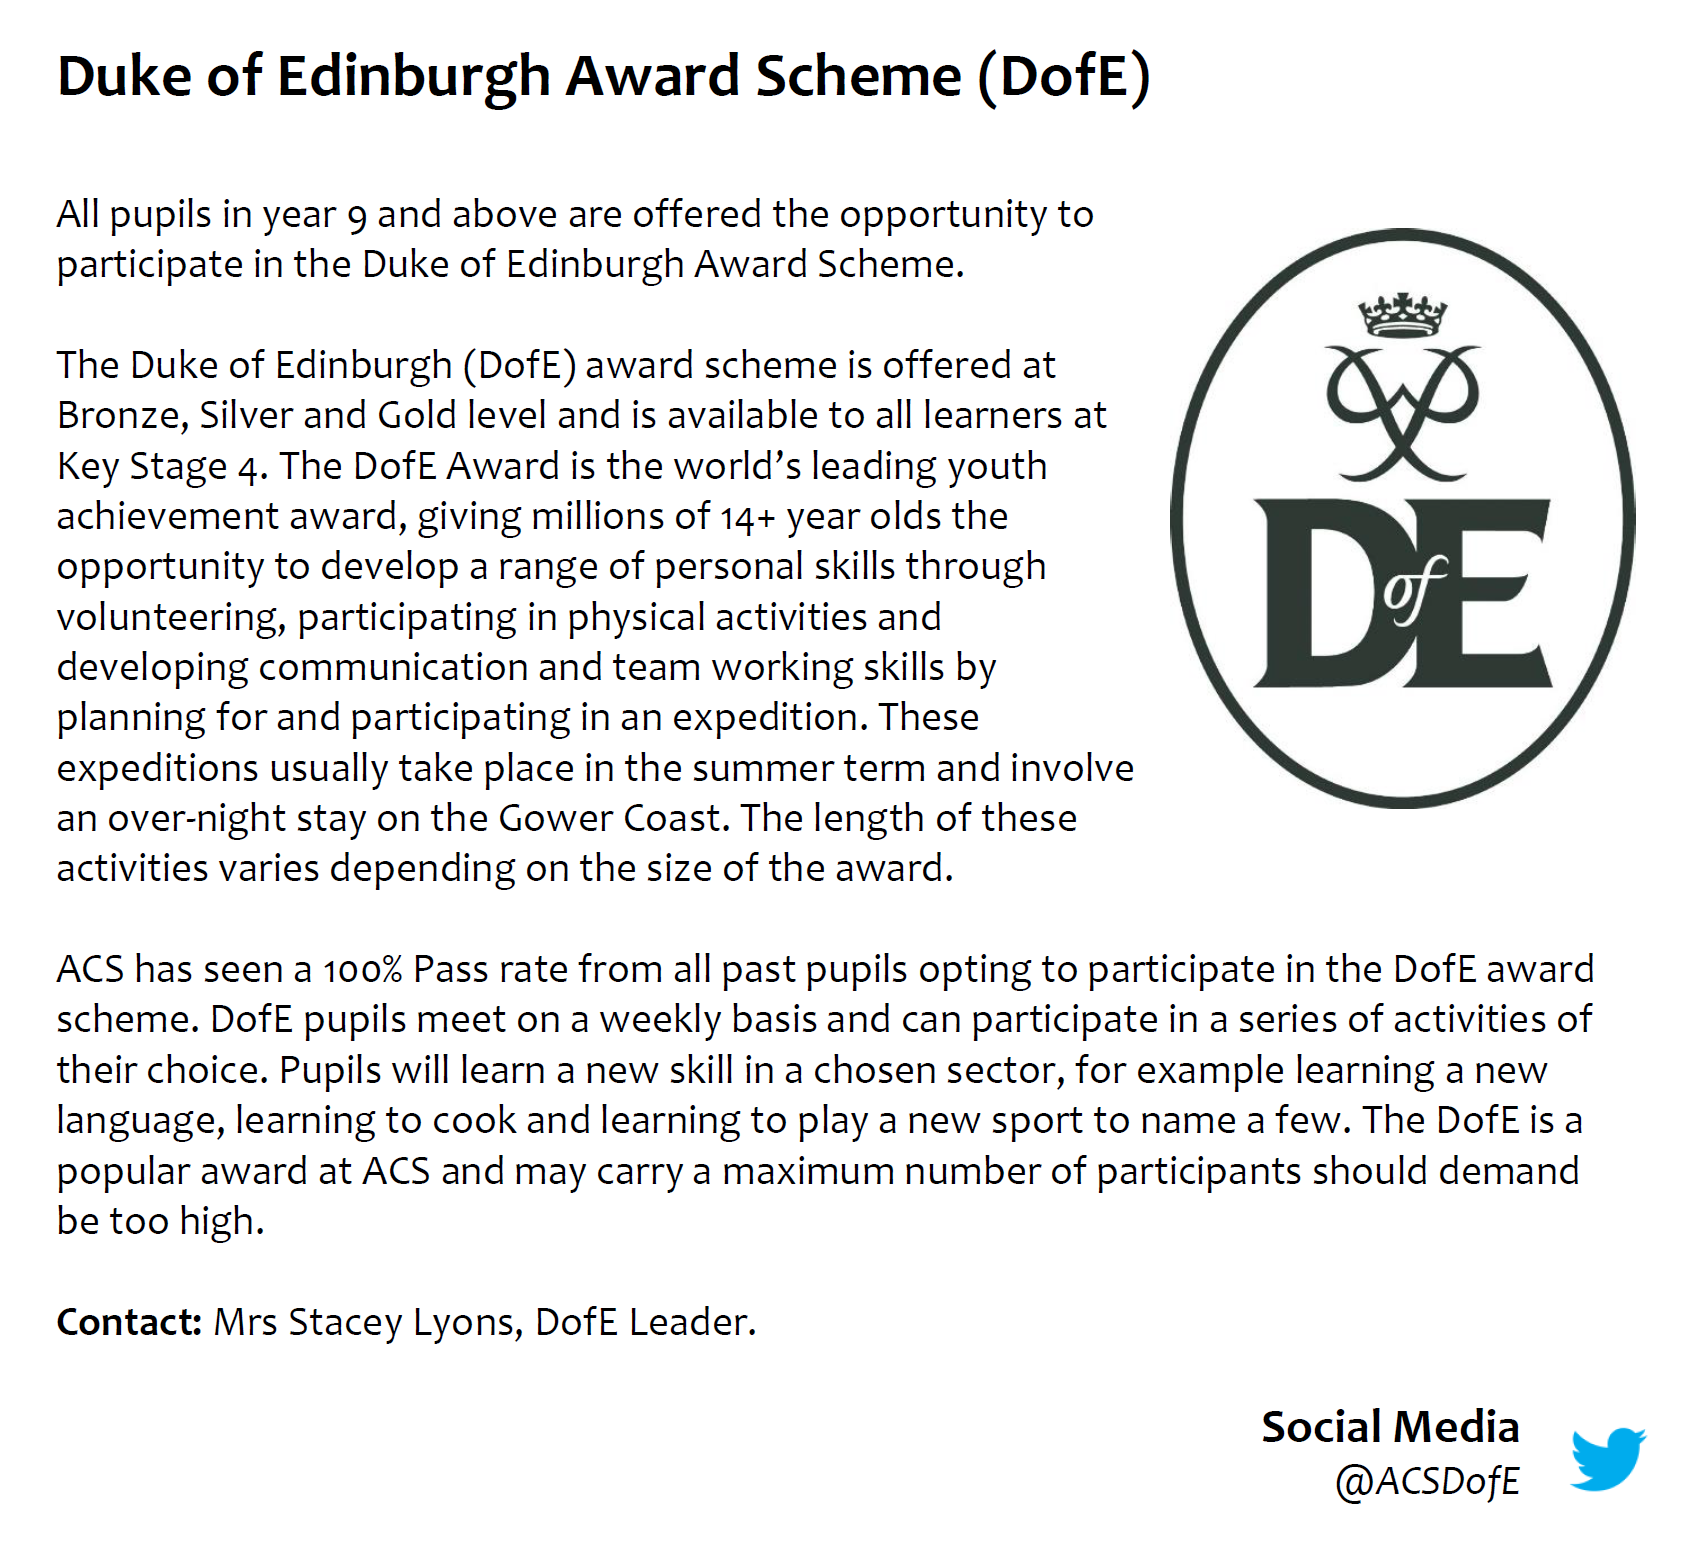 All pupils in year 9 and above are offered the opportunity to participate in the Duke of Edinburgh Award Scheme. The Duke of Edinburgh (DofE) award scheme is offered at Bronze, Silver and Gold level and is available to all learners at Key Stage 4. The DofE Award is the world's leading youth achievement award, giving millions of 14+ year olds the opportunity to develop a range of personal skills through volunteering, participating in physical activities and developing communication and team working skills by planning for and participating in an expedition. These expeditions usually take place in the summer term and involve an over-night stay on the Gower Coast. The length of these activities varies depending on the size of the award.  ACS has seen a 100% Pass rate from all past pupils opting to participate in the DofE award scheme. DofE pupils meet on a weekly basis and can participate in a series of activities of their choice. Pupils will learn a new skill in a chosen sector, for example learning a new language, learning to cook and learning to play a new sport to name a few. The DofE is a popular award at ACS and may carry a maximum number of participants should demand be too high.  Contact: Mrs Stacey Lyons, DofE Leader.  Social Media @ACSDofE